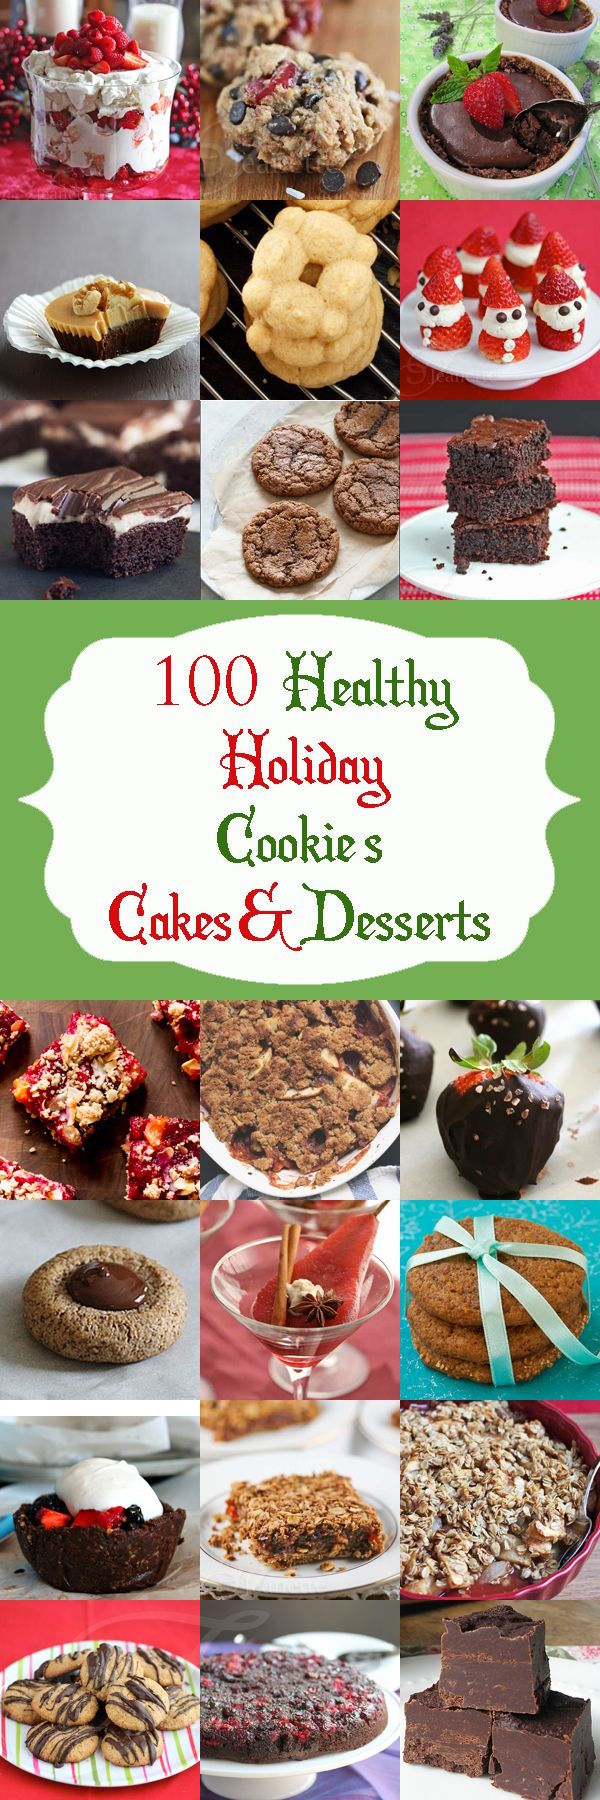 100 healthy holiday cookies, cakes, and desserts